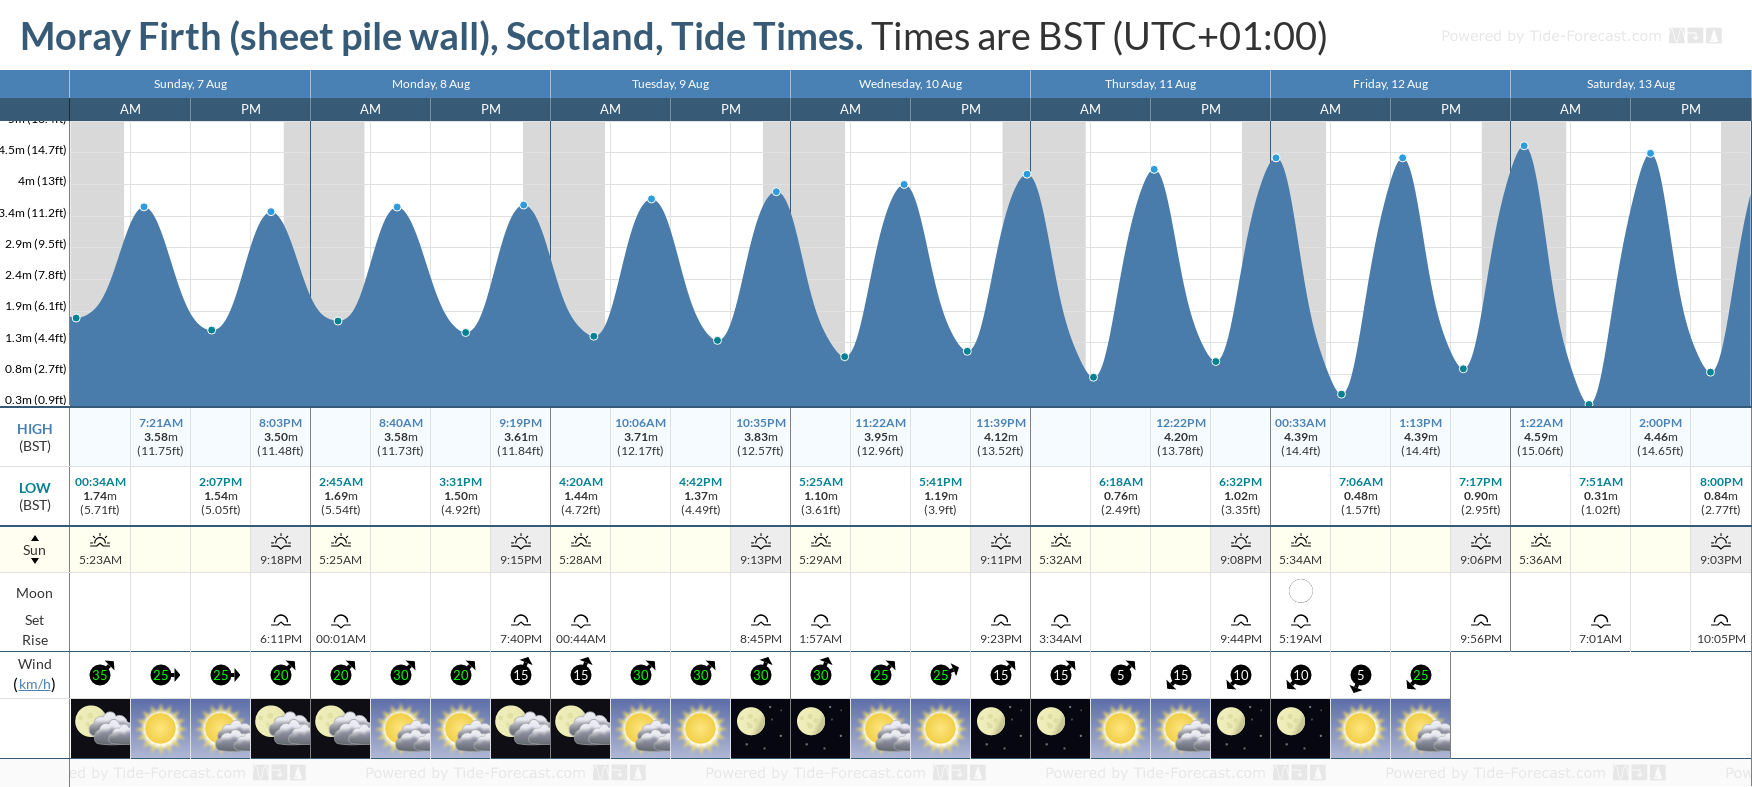 Moray Firth (sheet pile wall), Scotland Tide Chart including high and low tide tide times for the next 7 days